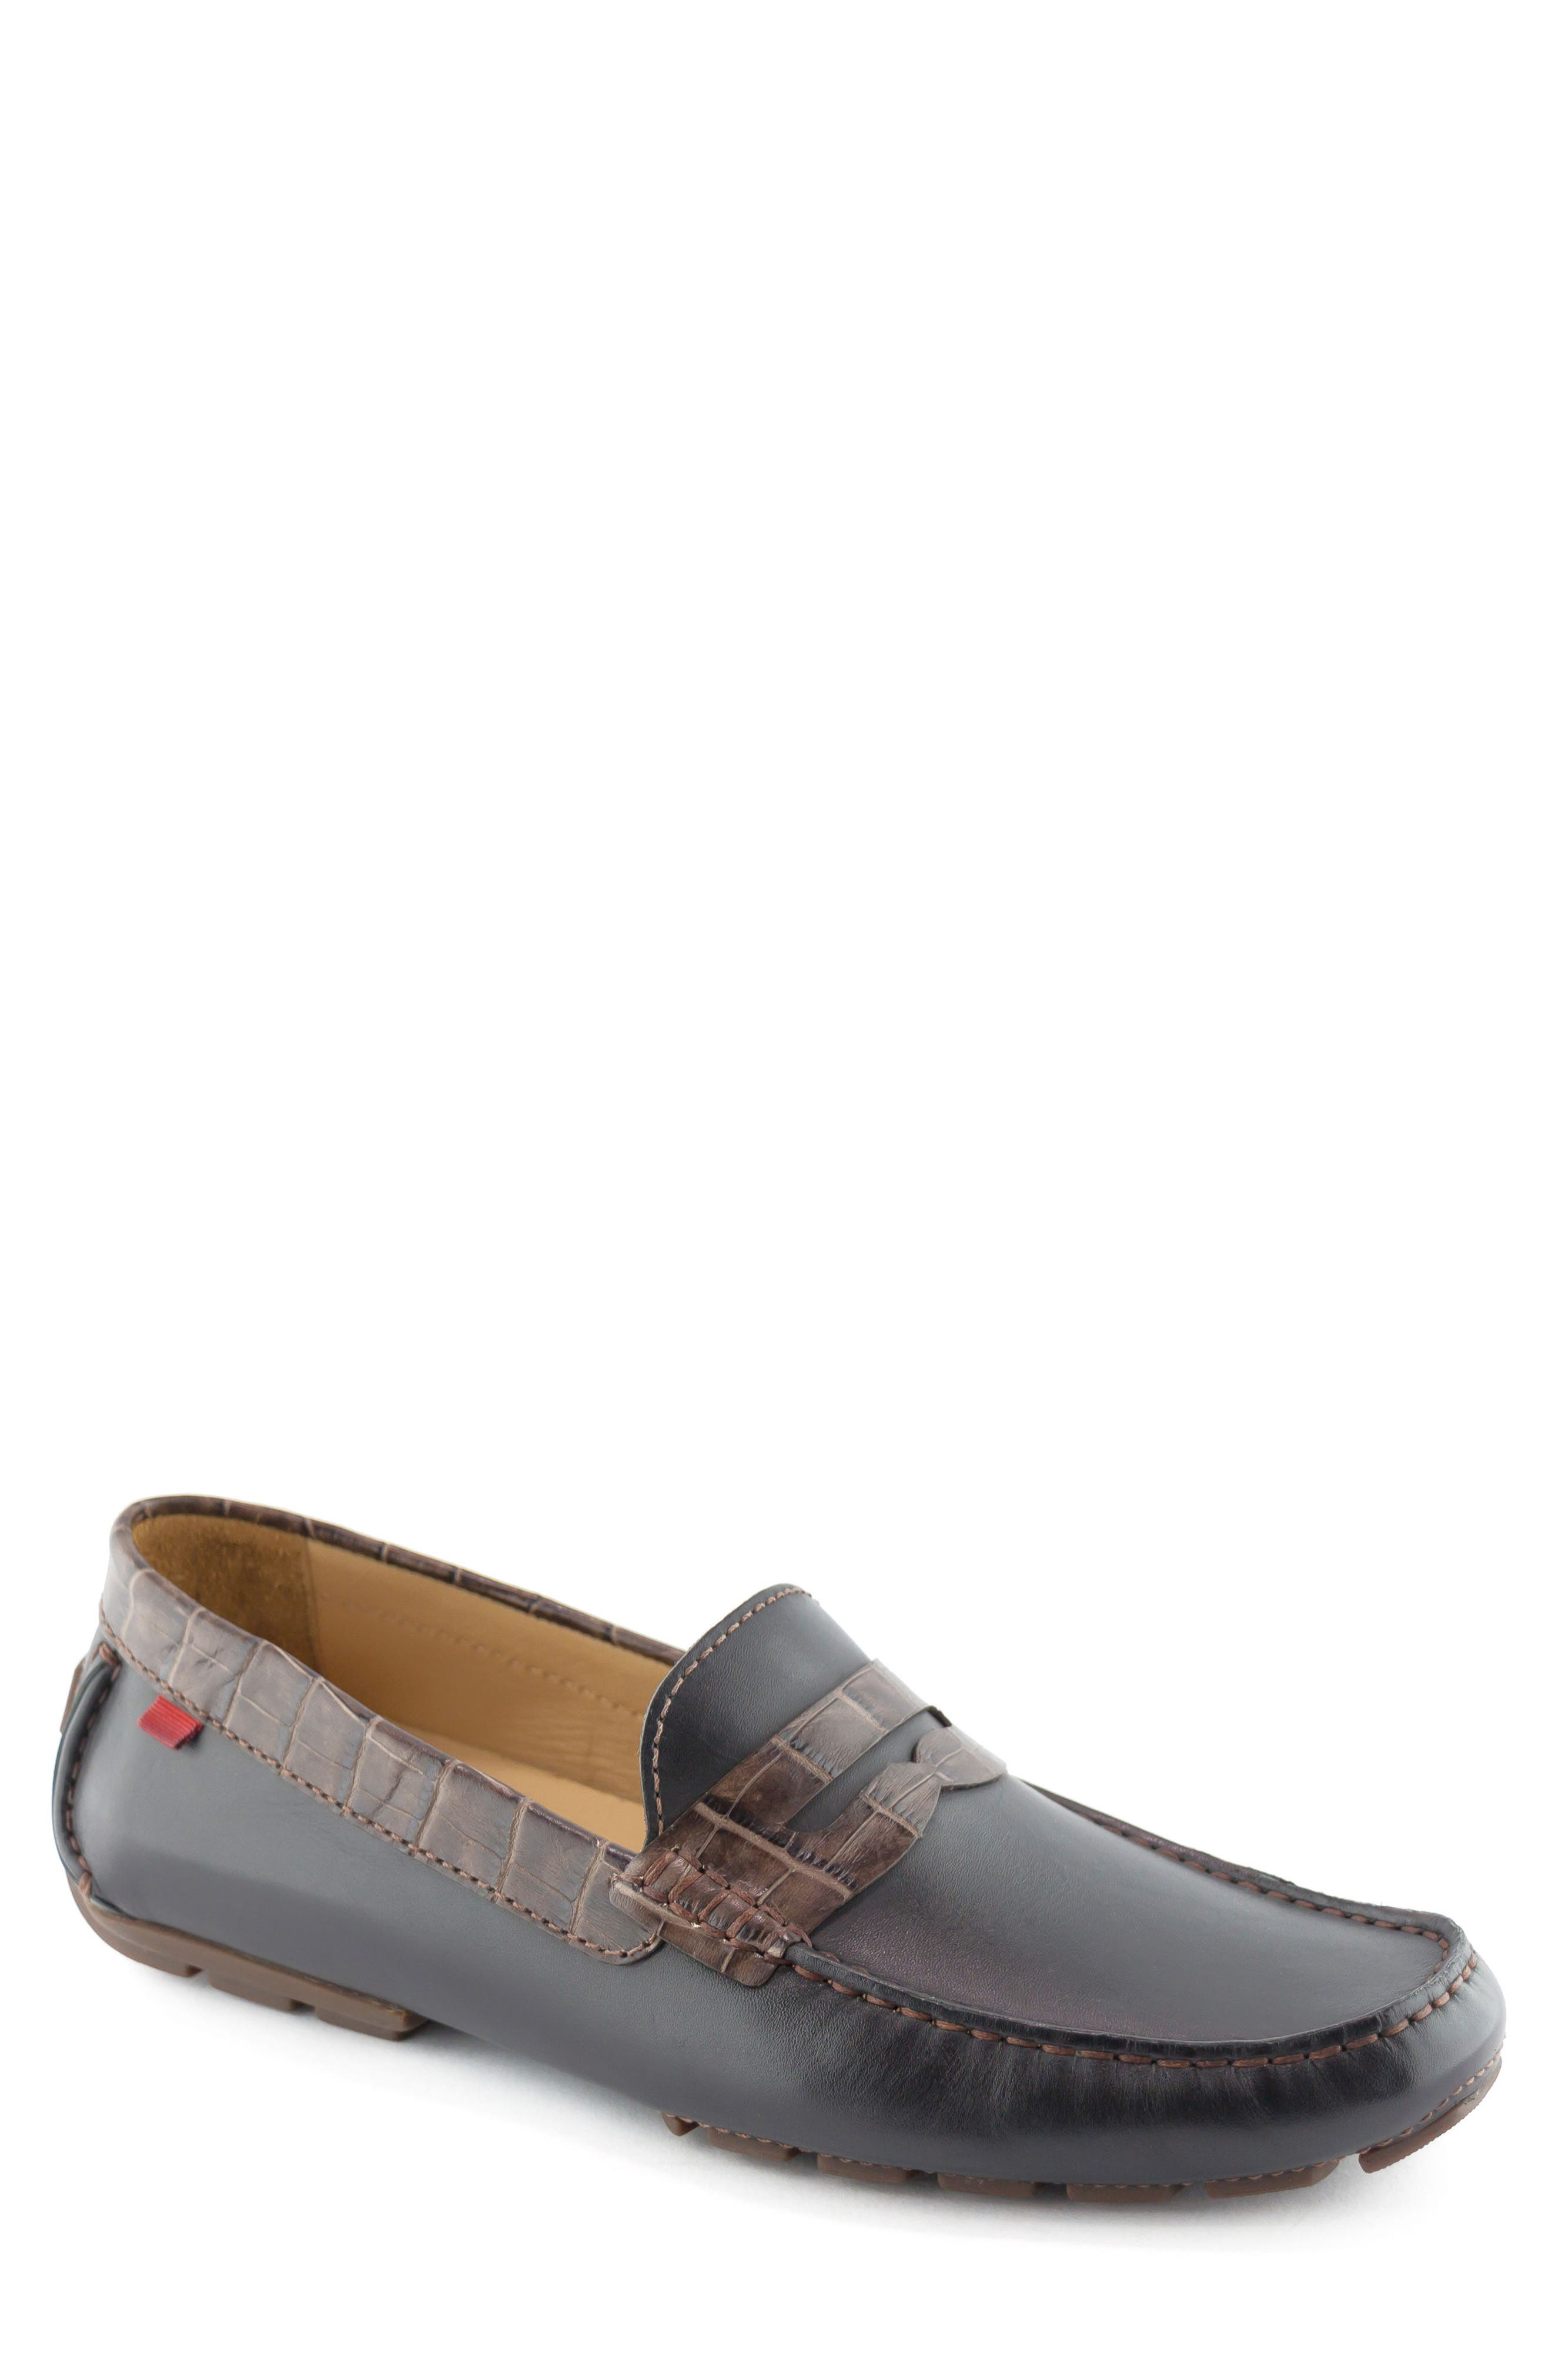 'Union Street' Penny Loafer,                             Main thumbnail 1, color,                             Black/ Brown